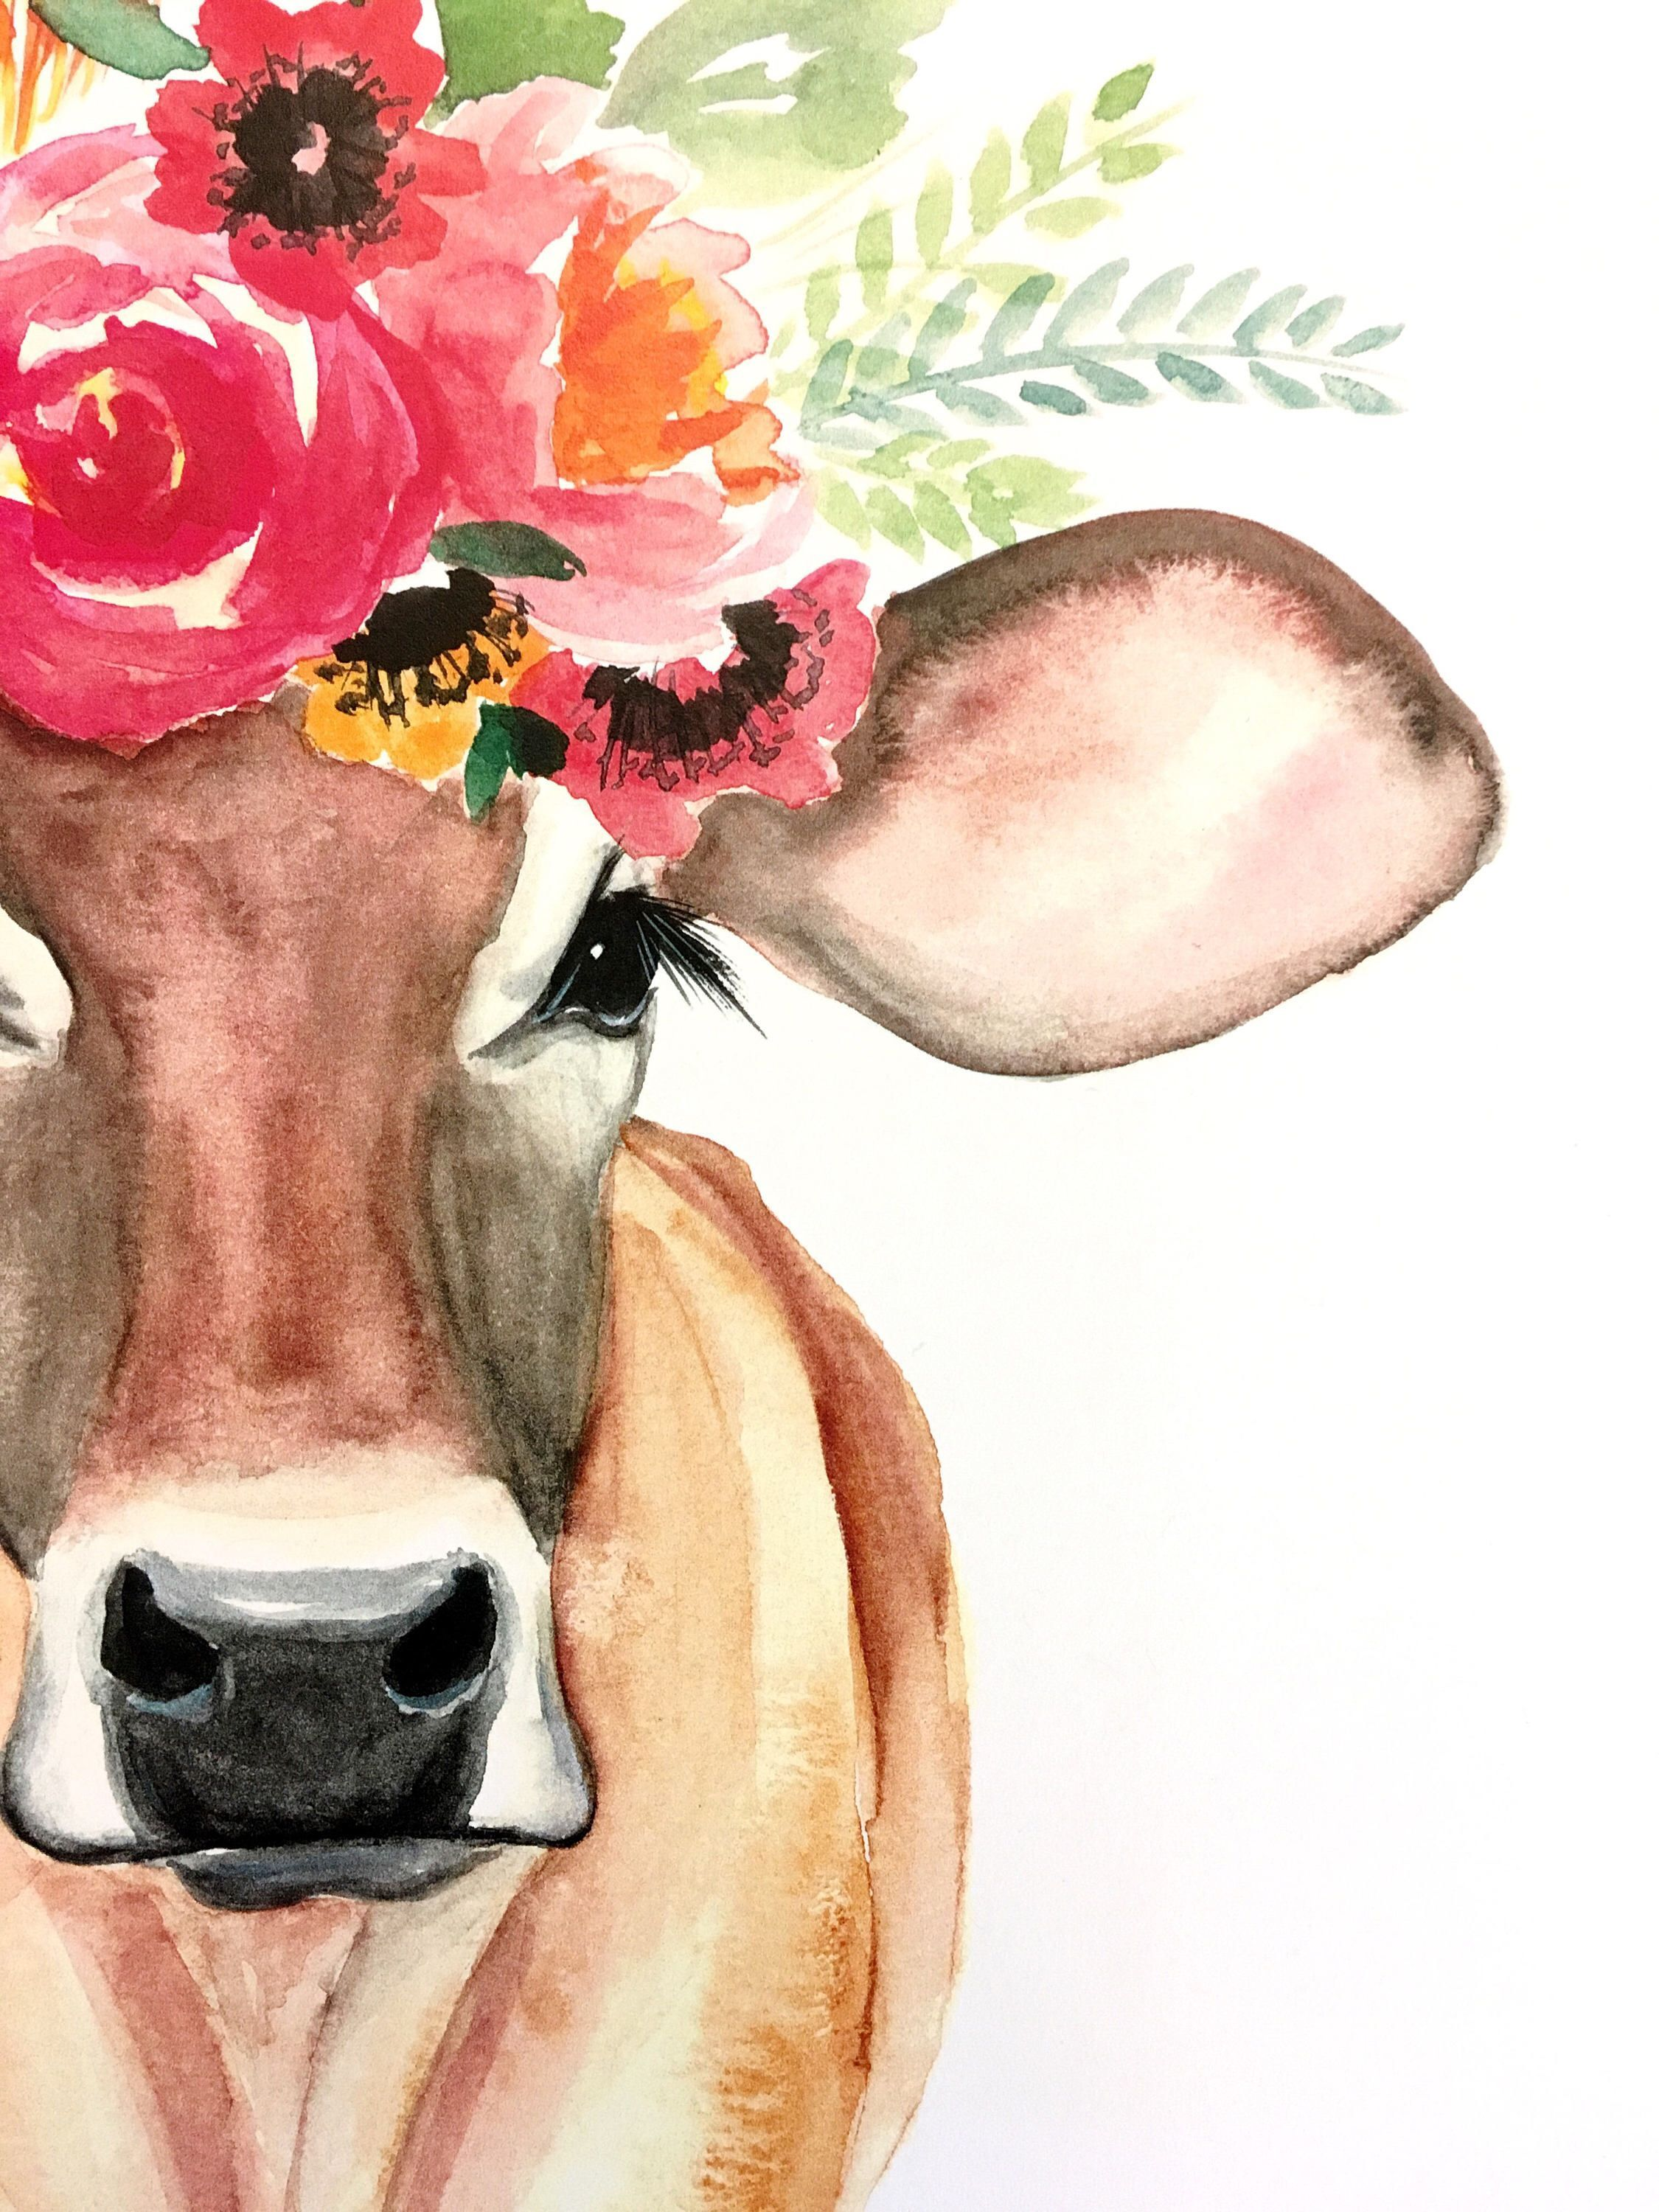 Watercolor Cow With Flower Crown Moo Watercolors Painting